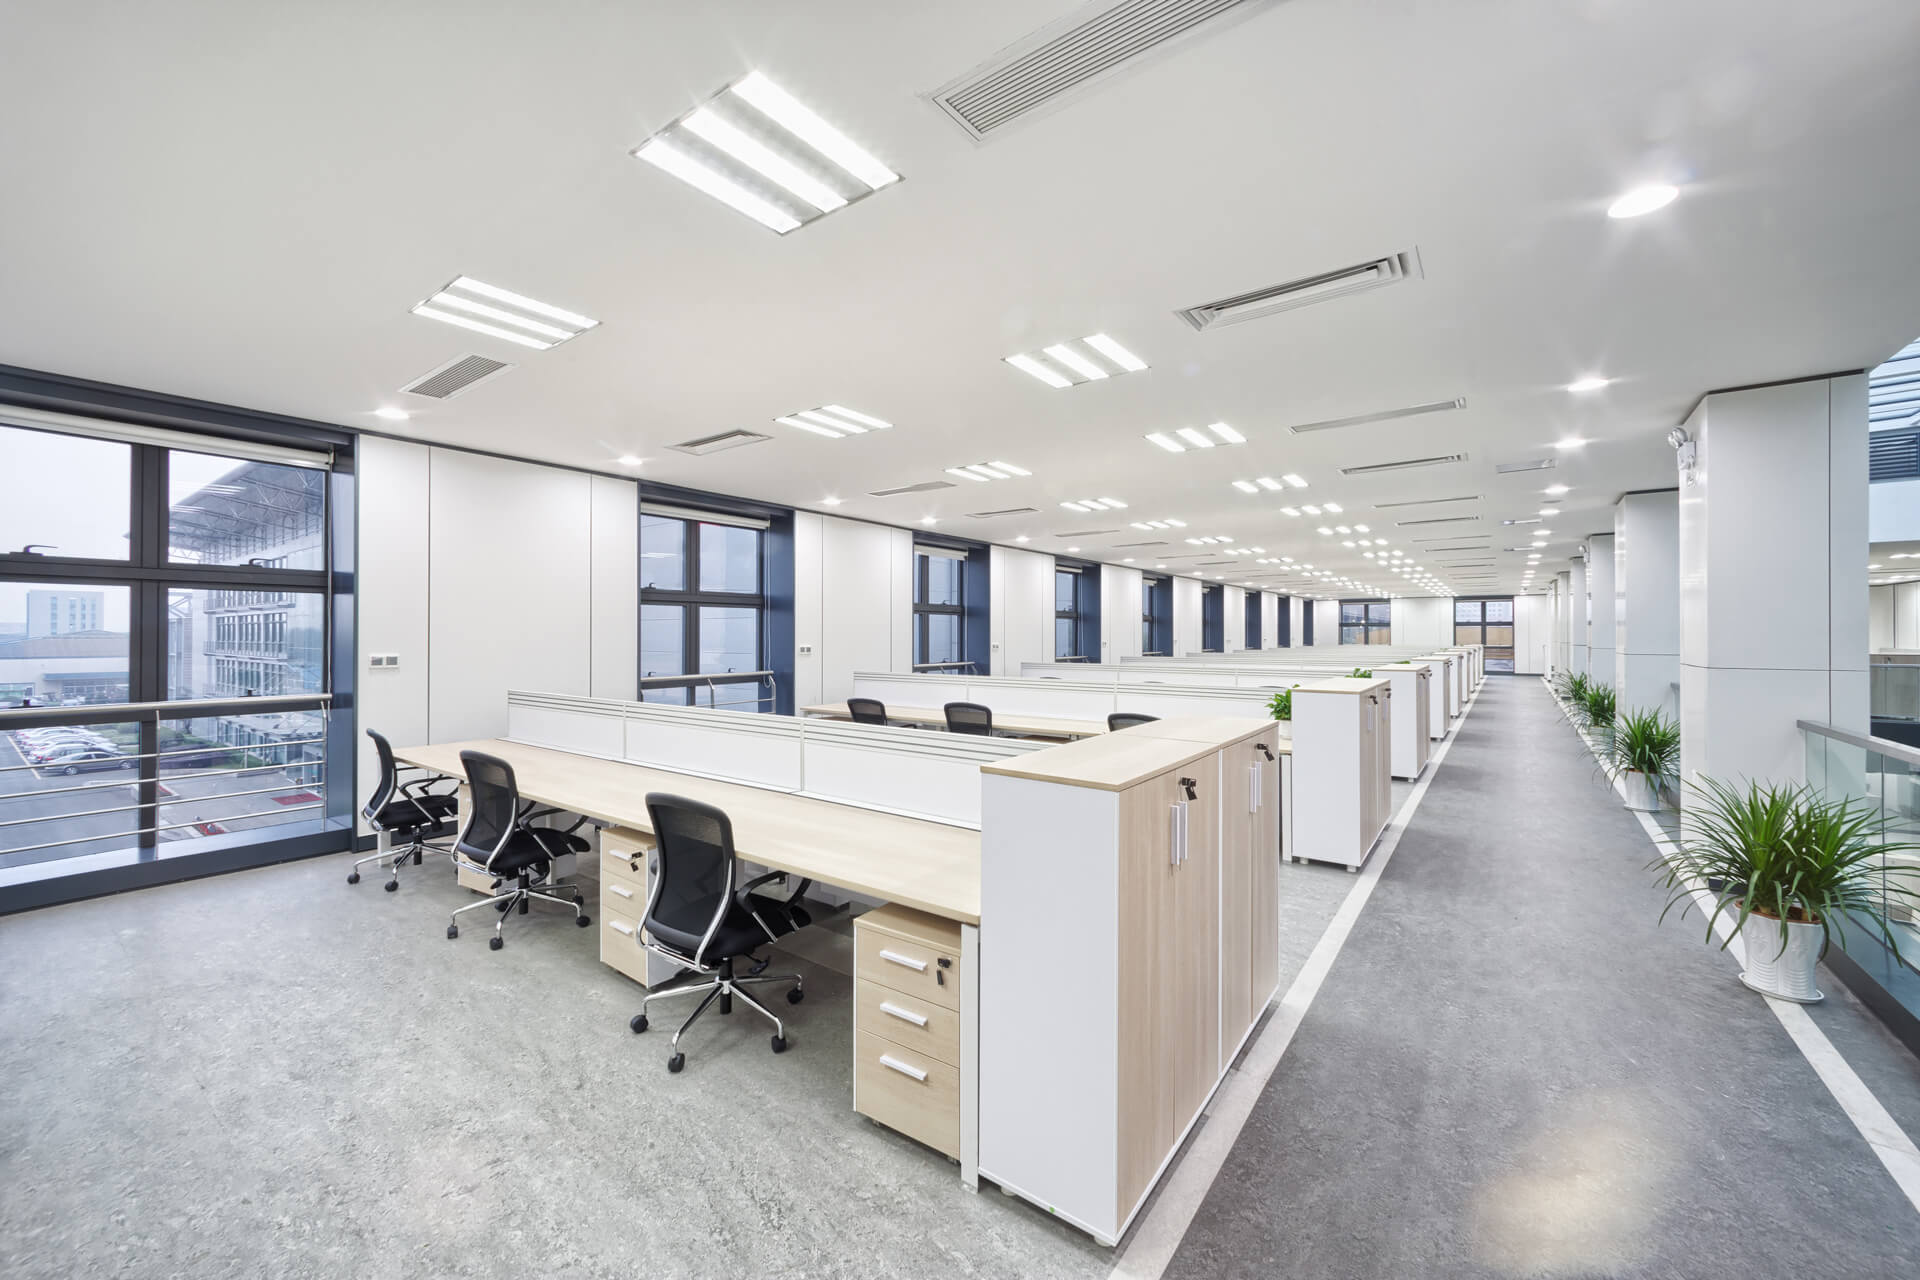 Office fit out and refurbishment contractors